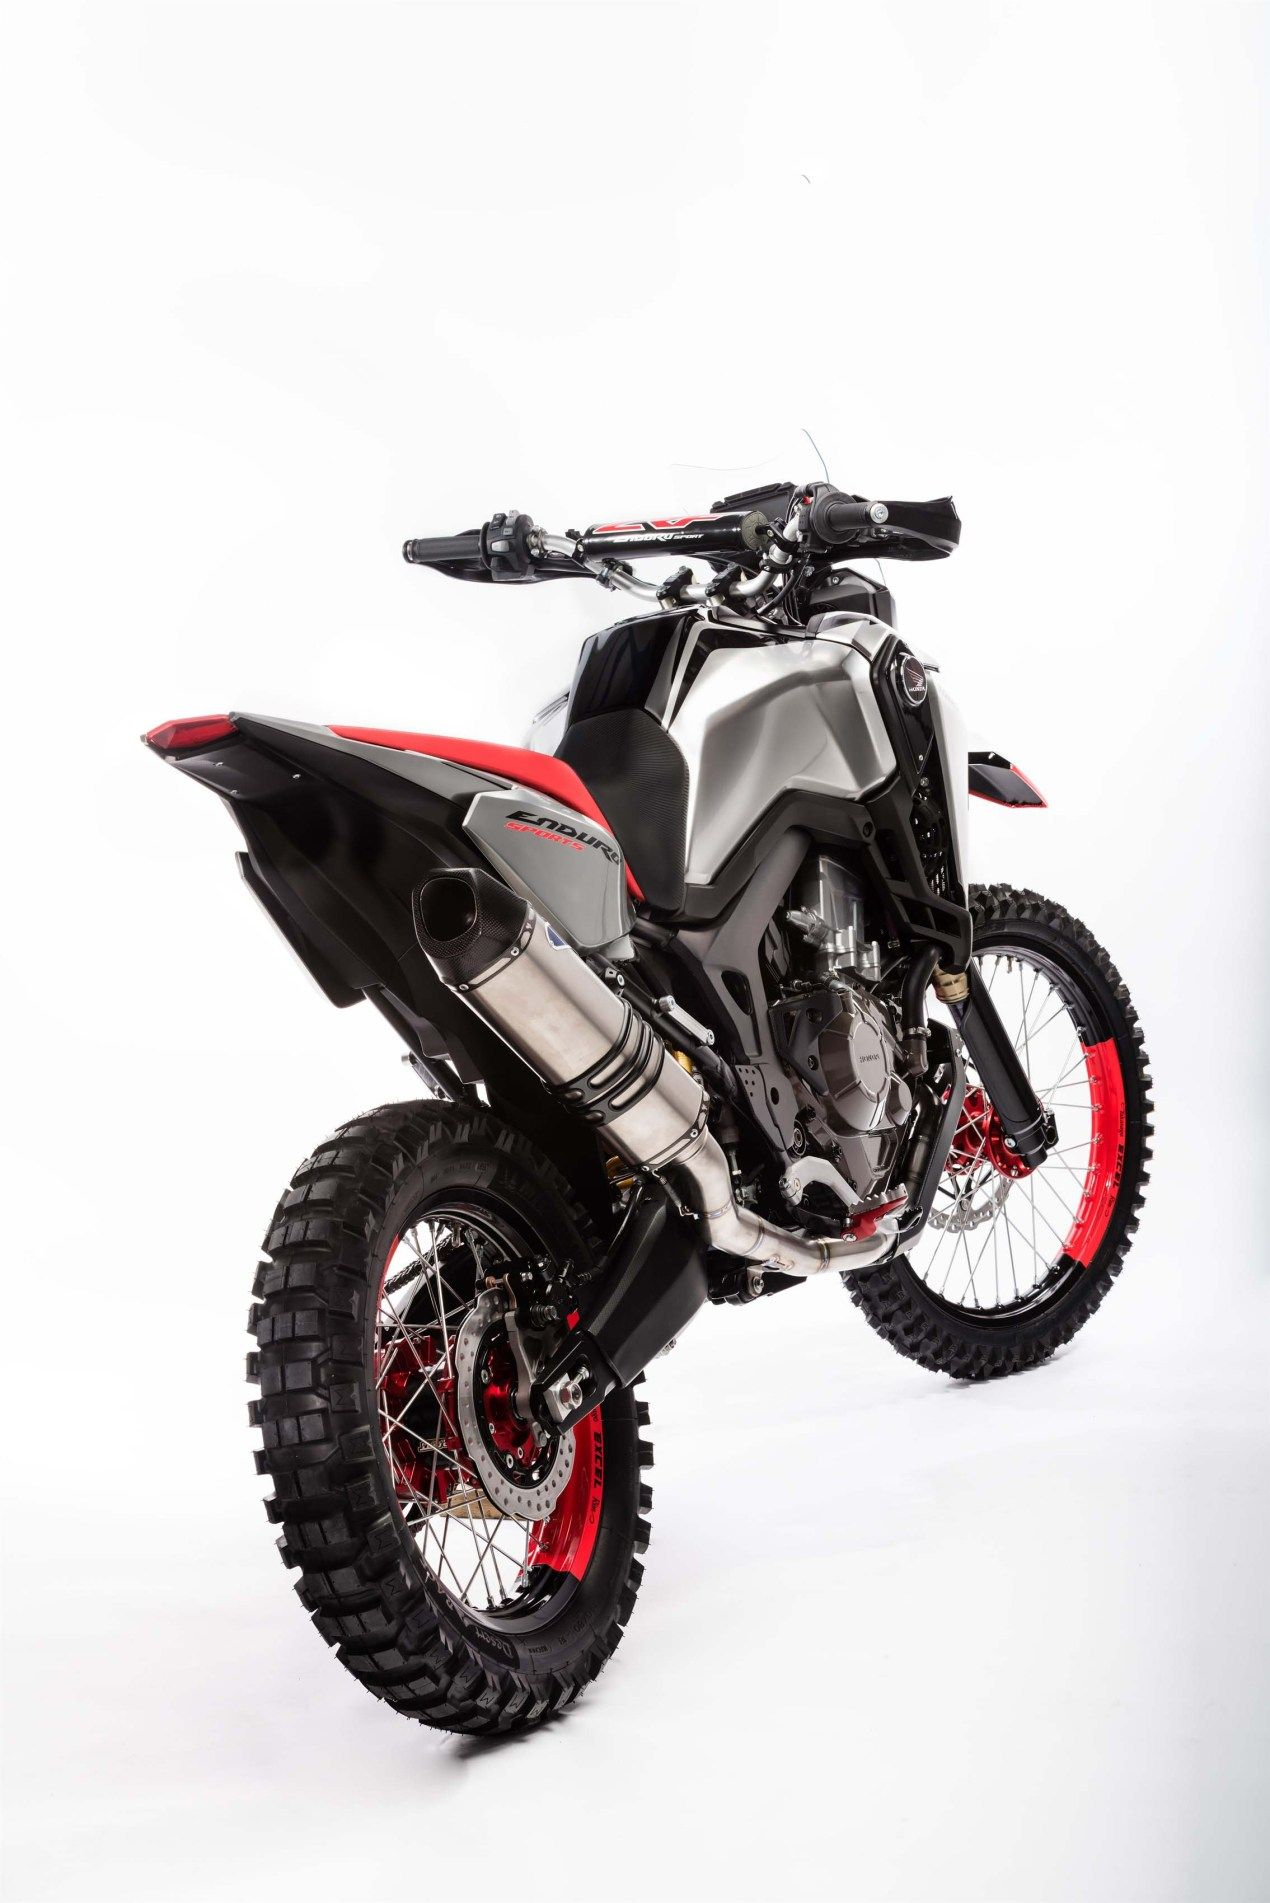 Oh My The Honda Africa Twin Enduro Sports Concept In 2020 With Images Honda Africa Twin